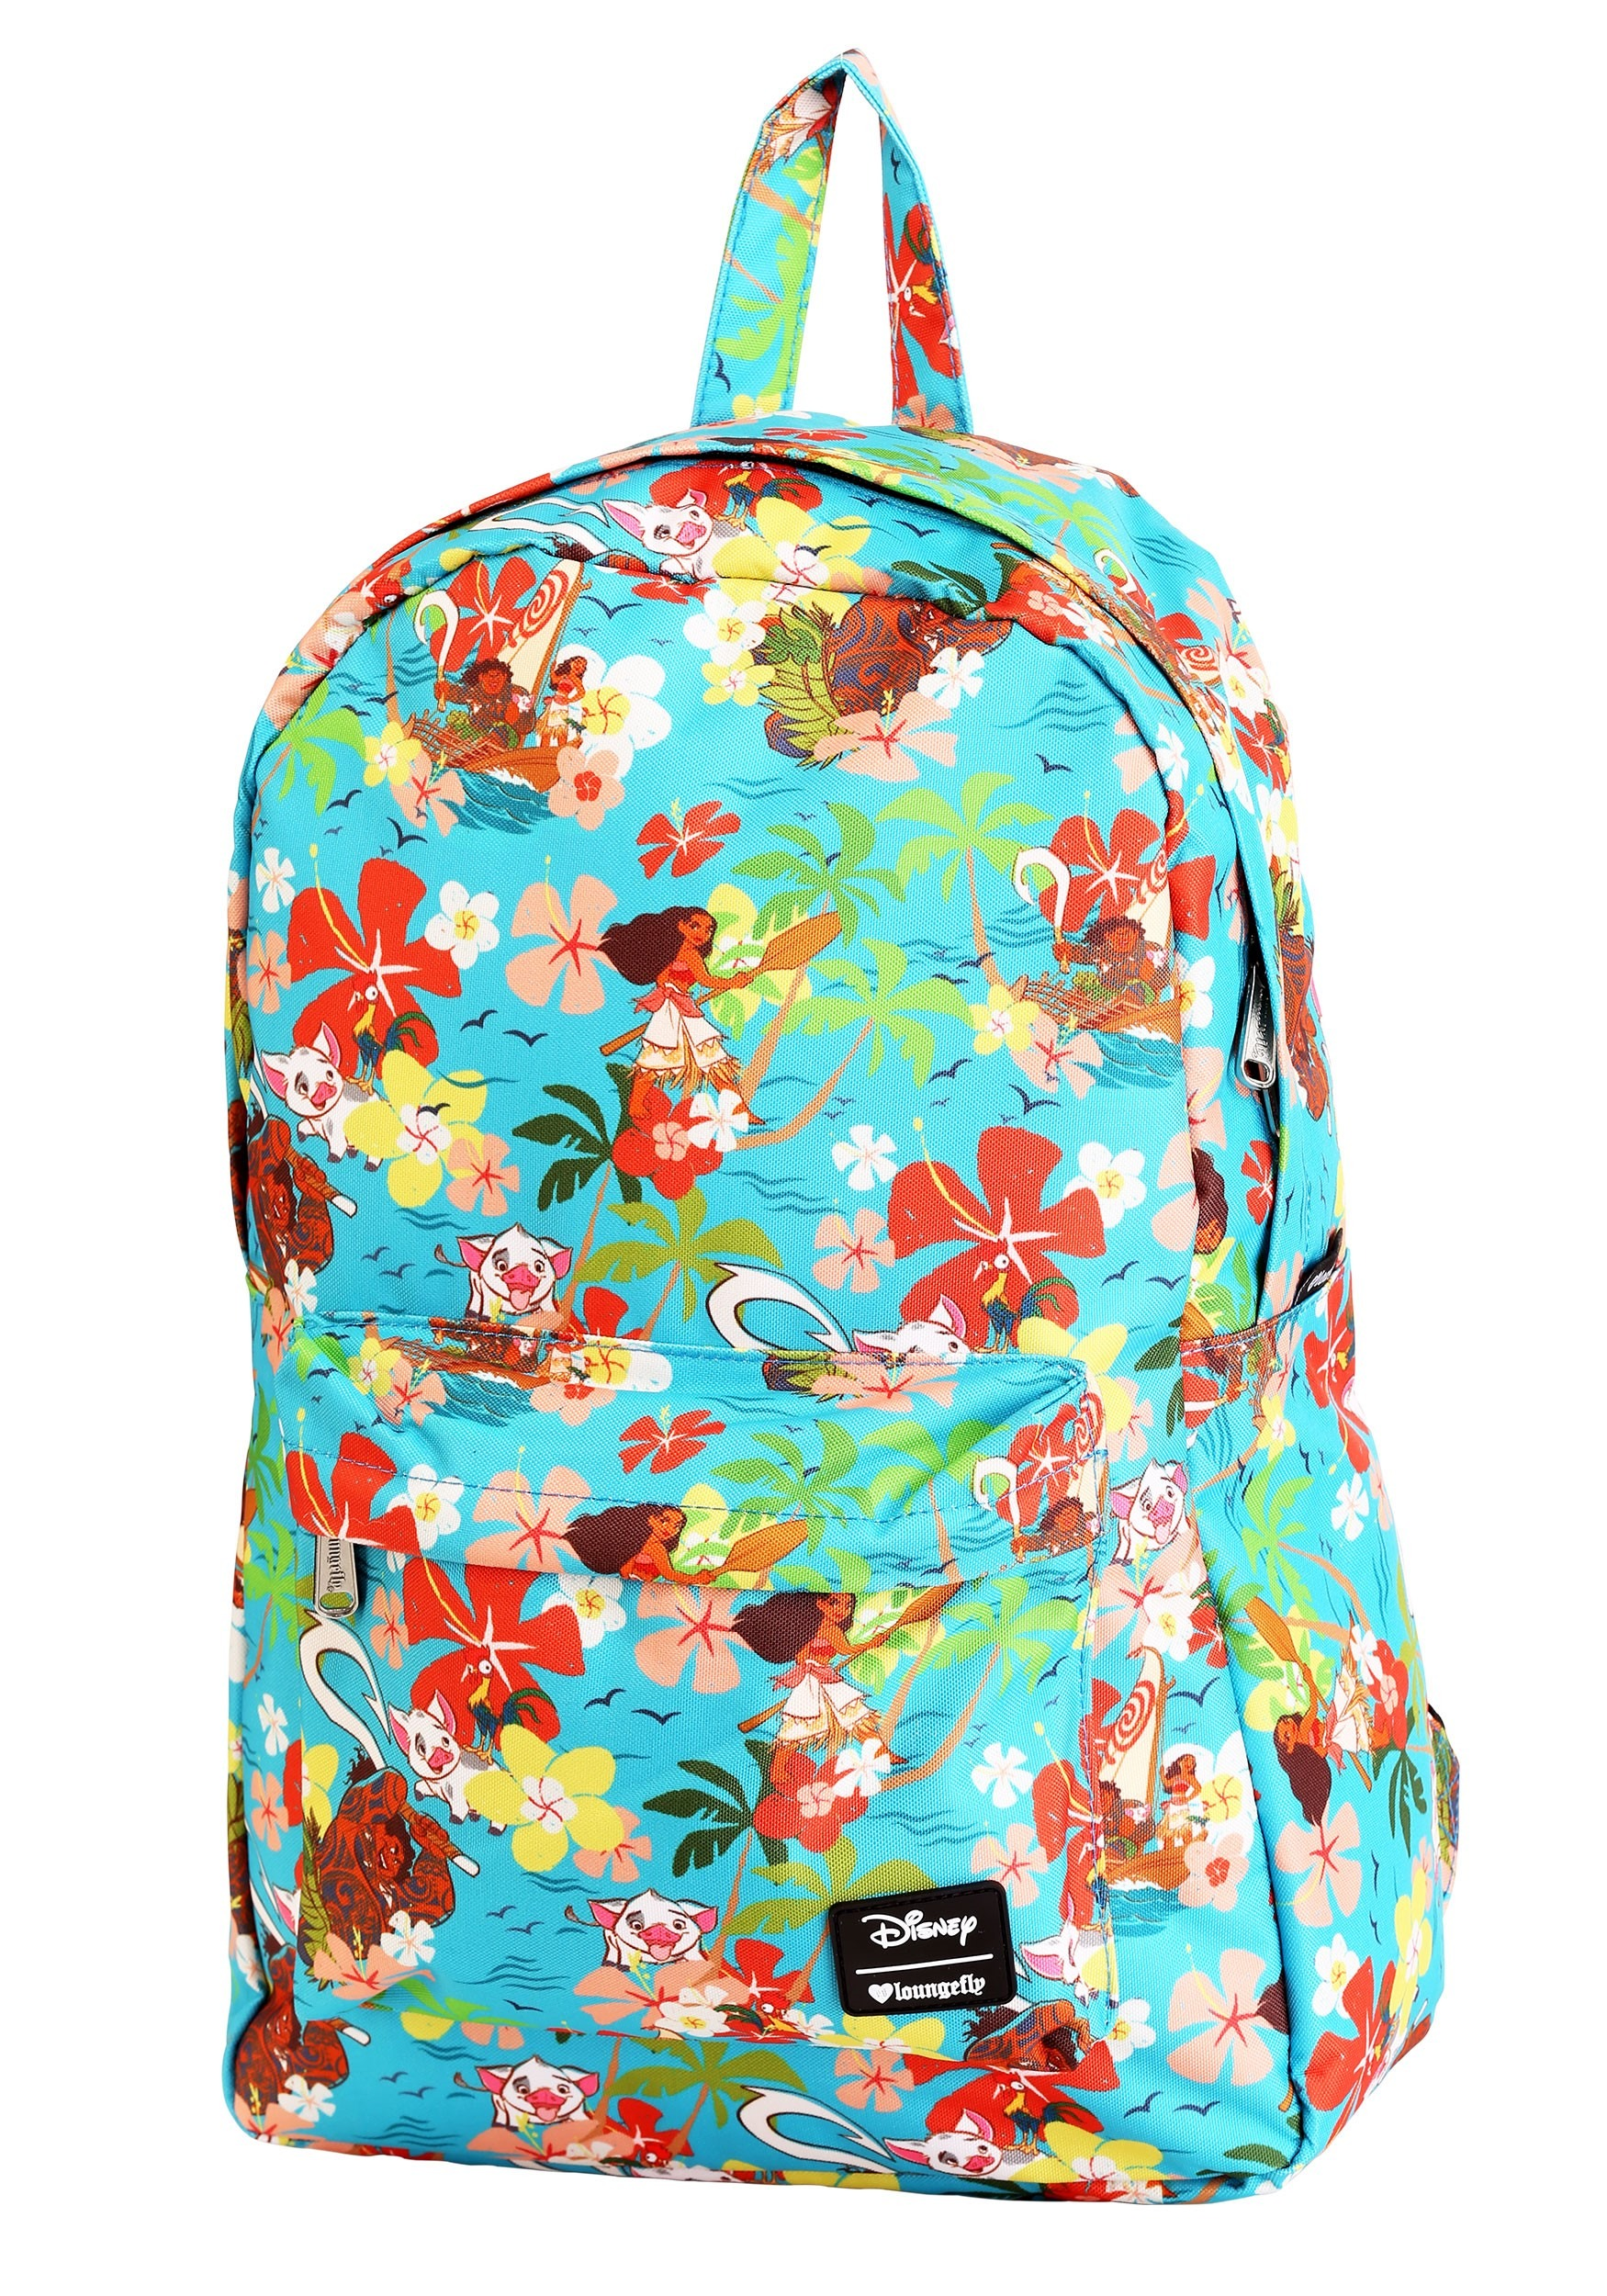 c0cd3a93ab4 Disney s Moana Floral All Over Print Loungefly Backpack